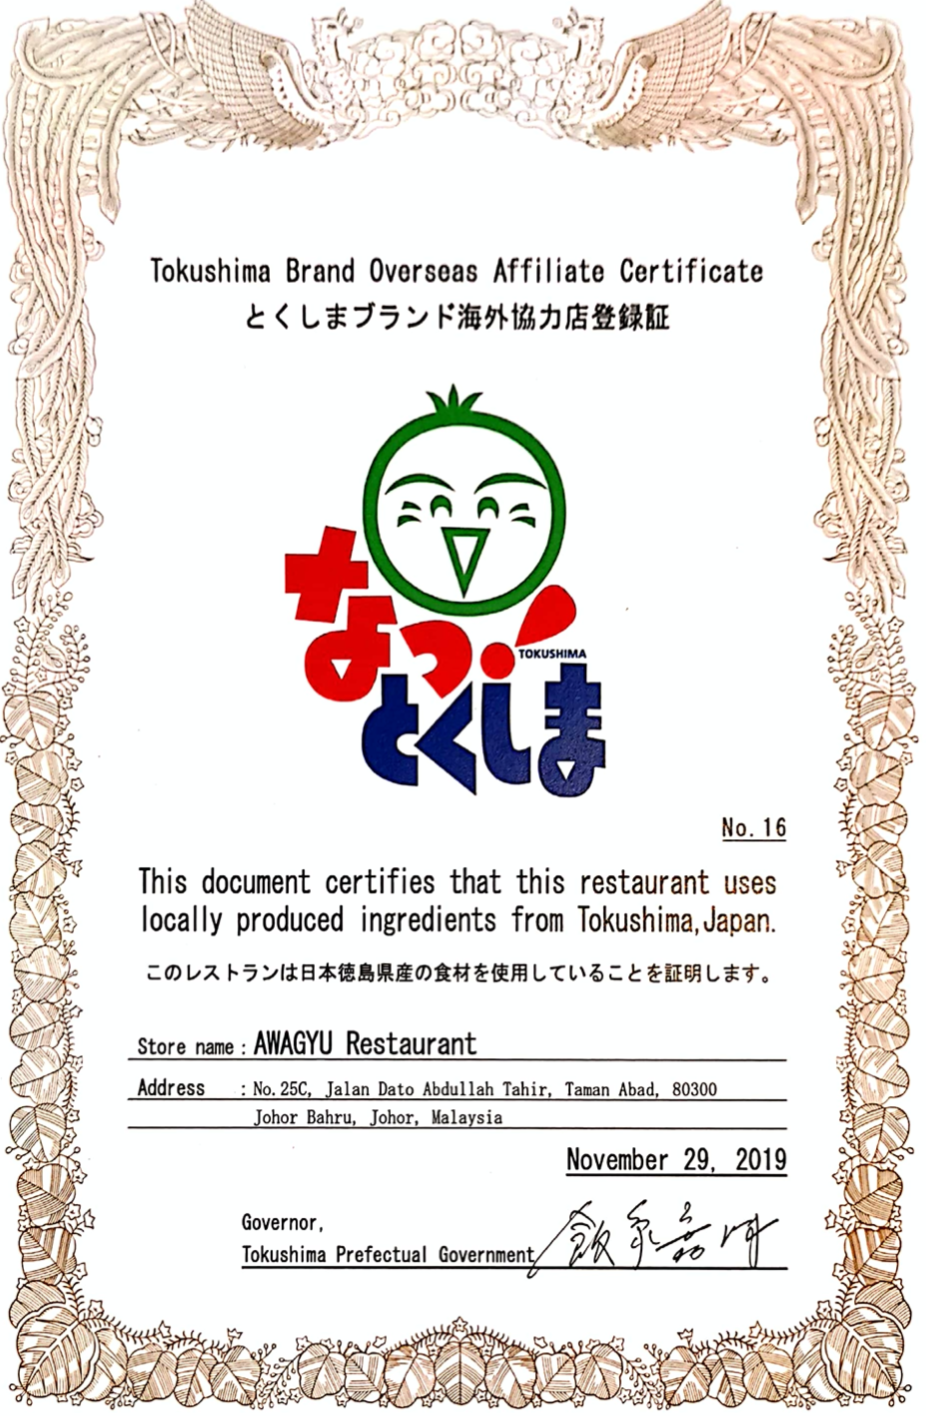 Tokushima Brand Overseas Affiliate Certificate.png